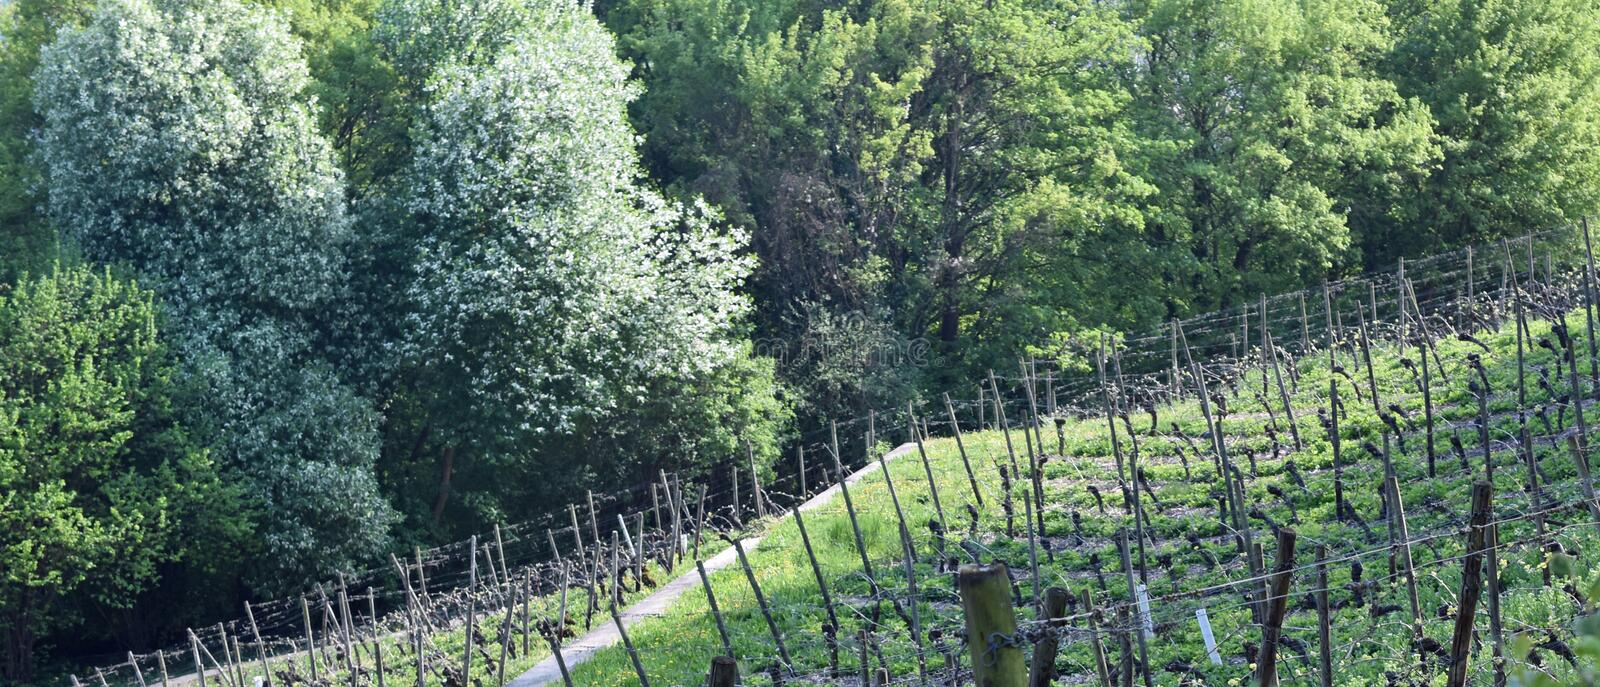 Vineyard Lohrberg, Frankfurt / Main, Germany. This photograph shows a vindeyard in the foregrund. In the background are some bushes and trees. The photography royalty free stock photos